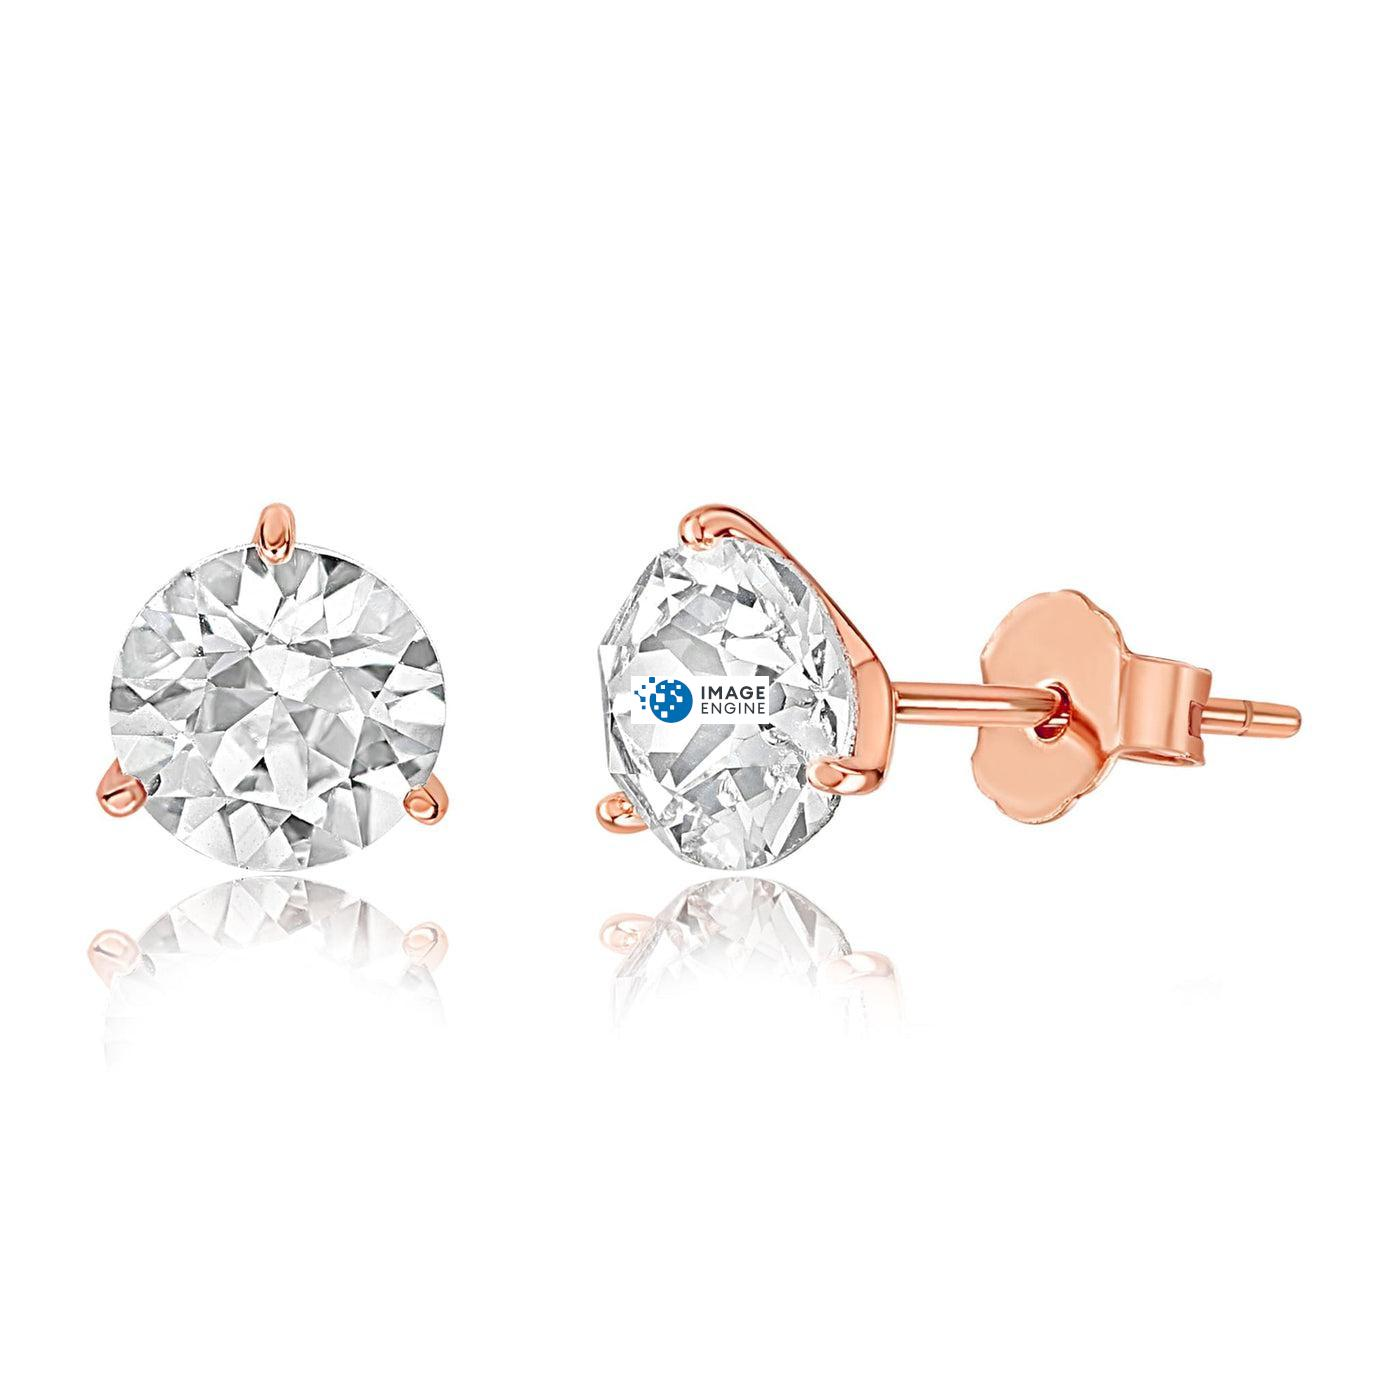 Swarovski Stud Earrings - Facing to the Left Down - 18K Rose Gold Vermeil